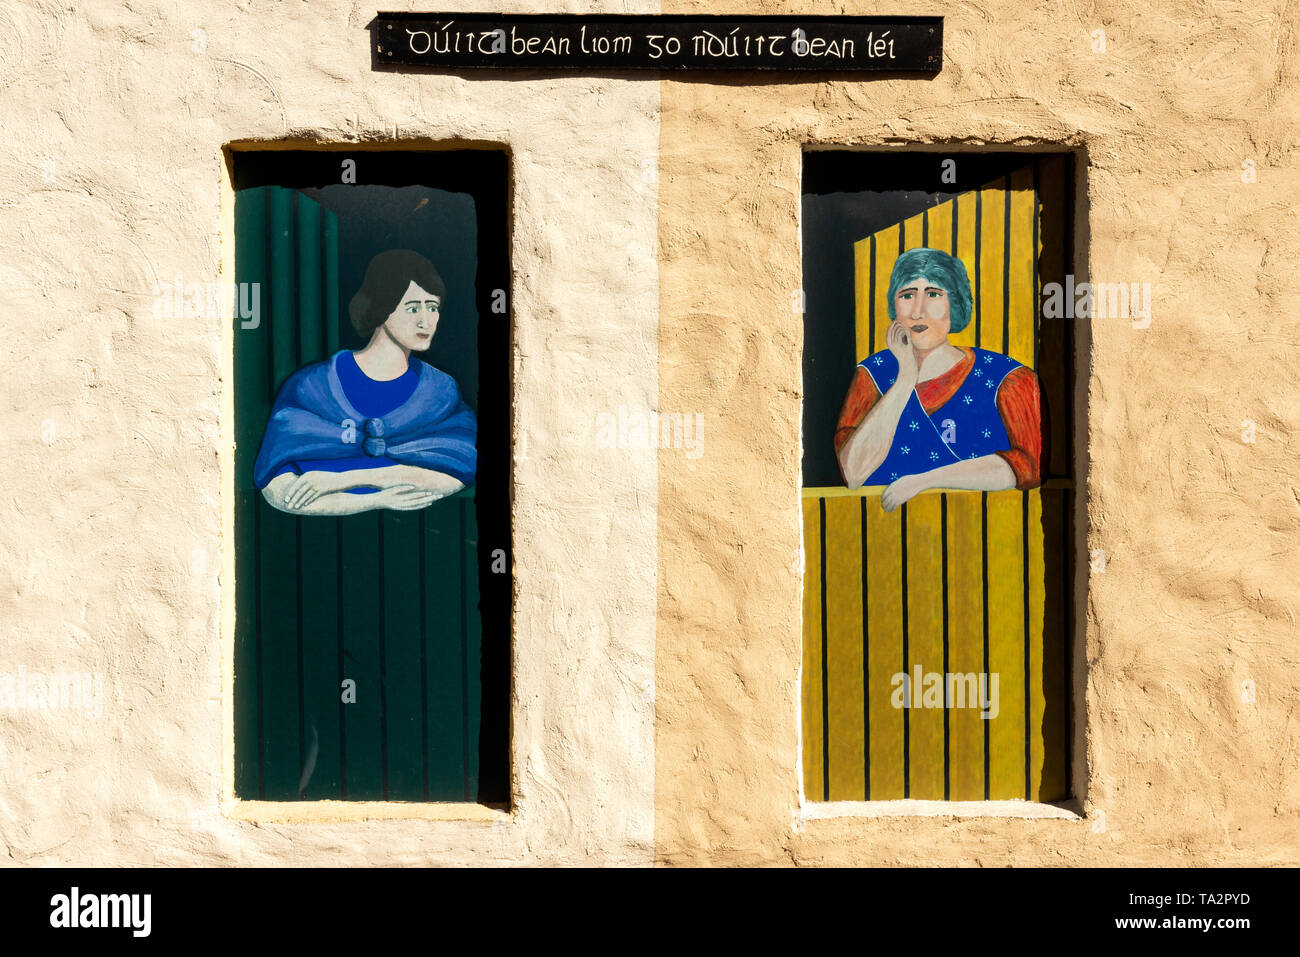 traditional-irish-cottage-detail-with-writing-in-irish-language-two-2-decorative-painted-colourful-illustrated-wooden-front-doors-of-chatting-women-TA2PYD.jpg